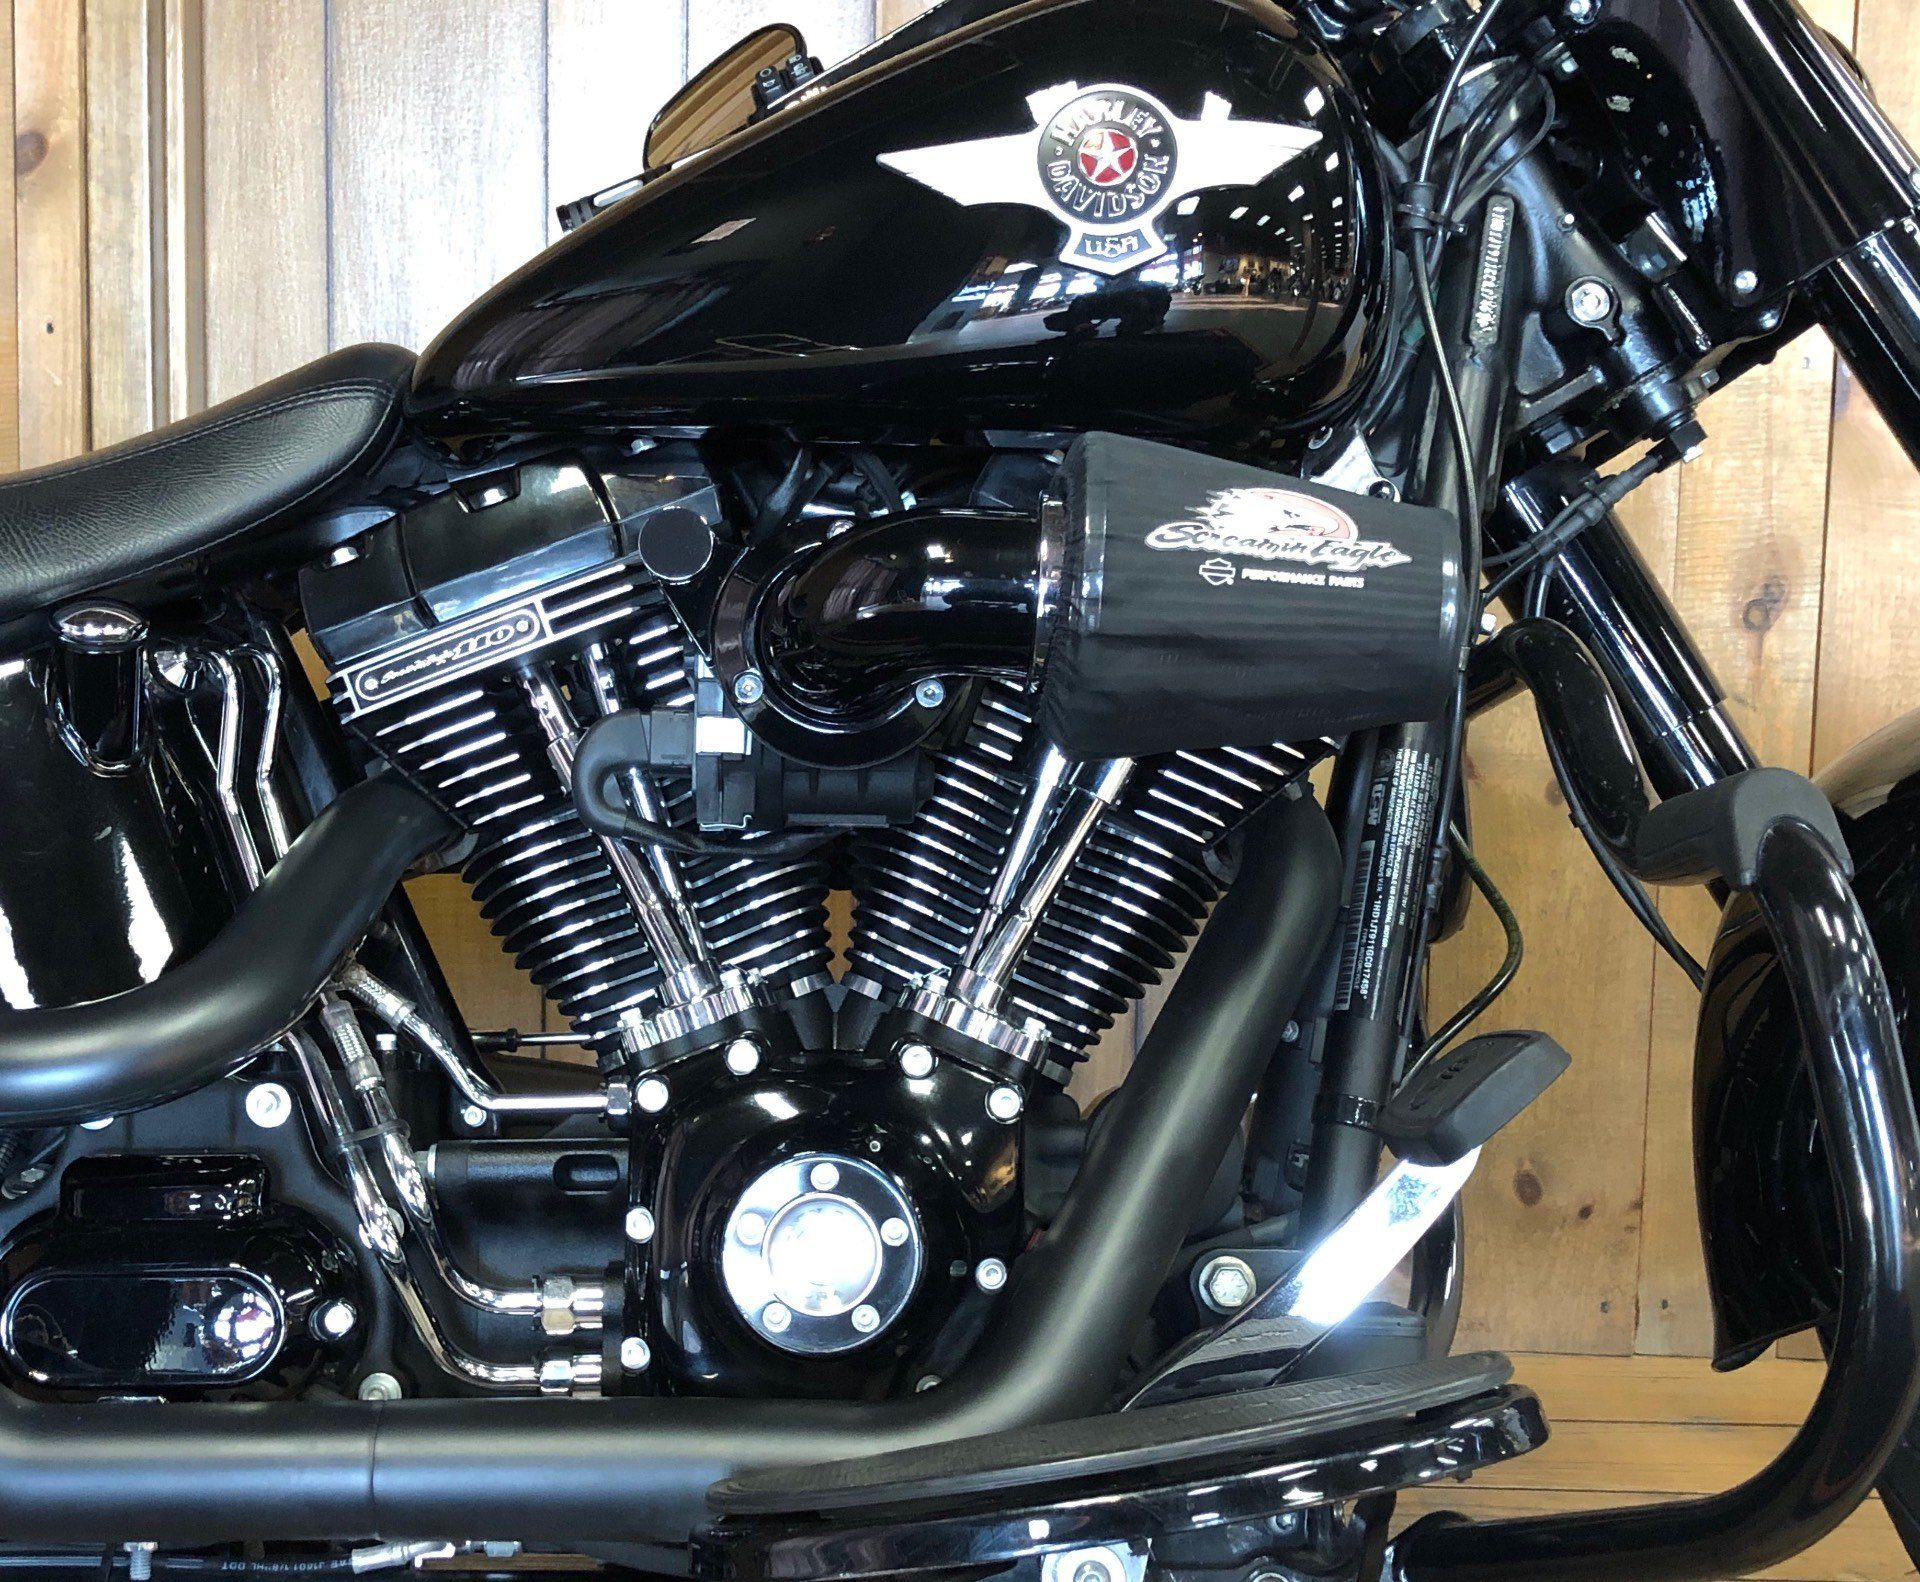 2016 Harley-Davidson Fat Boy Lo w/ 110 Motor in Harrisburg, Pennsylvania - Photo 2